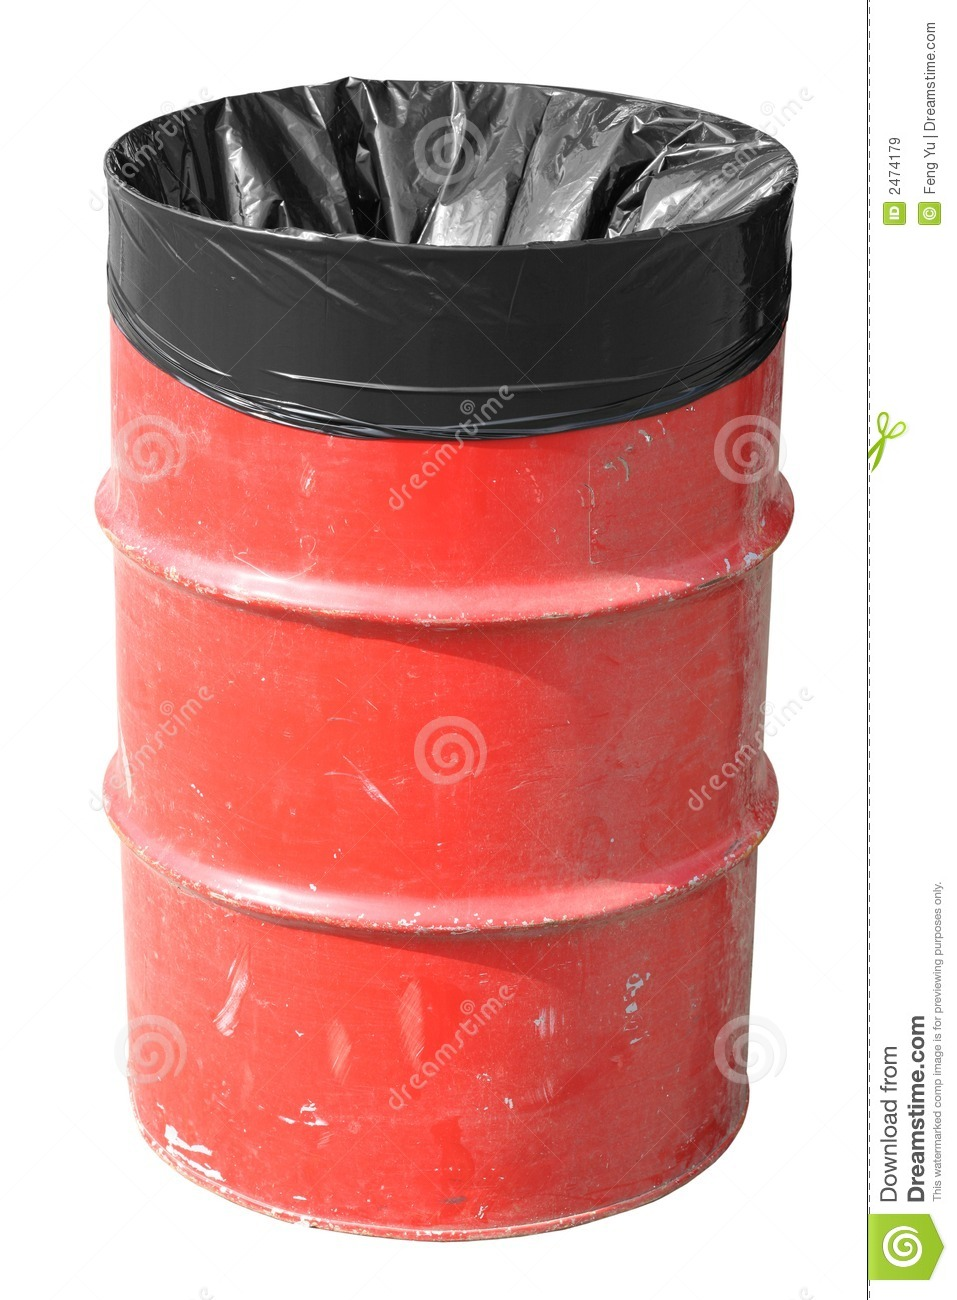 Trash Can Red Garbage Can Royalty Free Stock Images - Image: 2474179